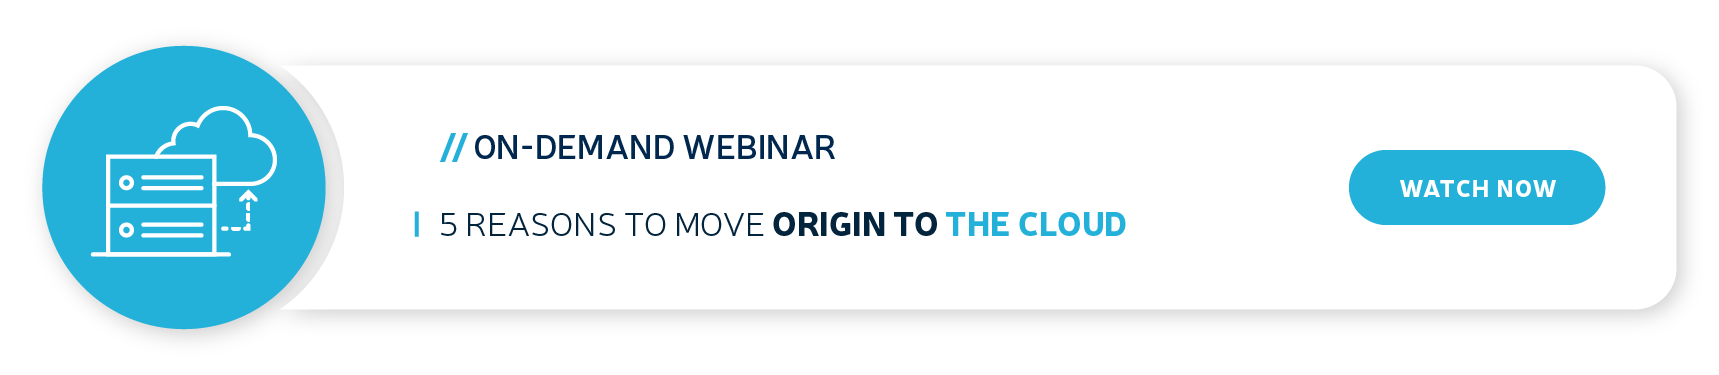 blog-banner-on_demand-webinar-5-reasons-to-move-origin-to-the-cloud